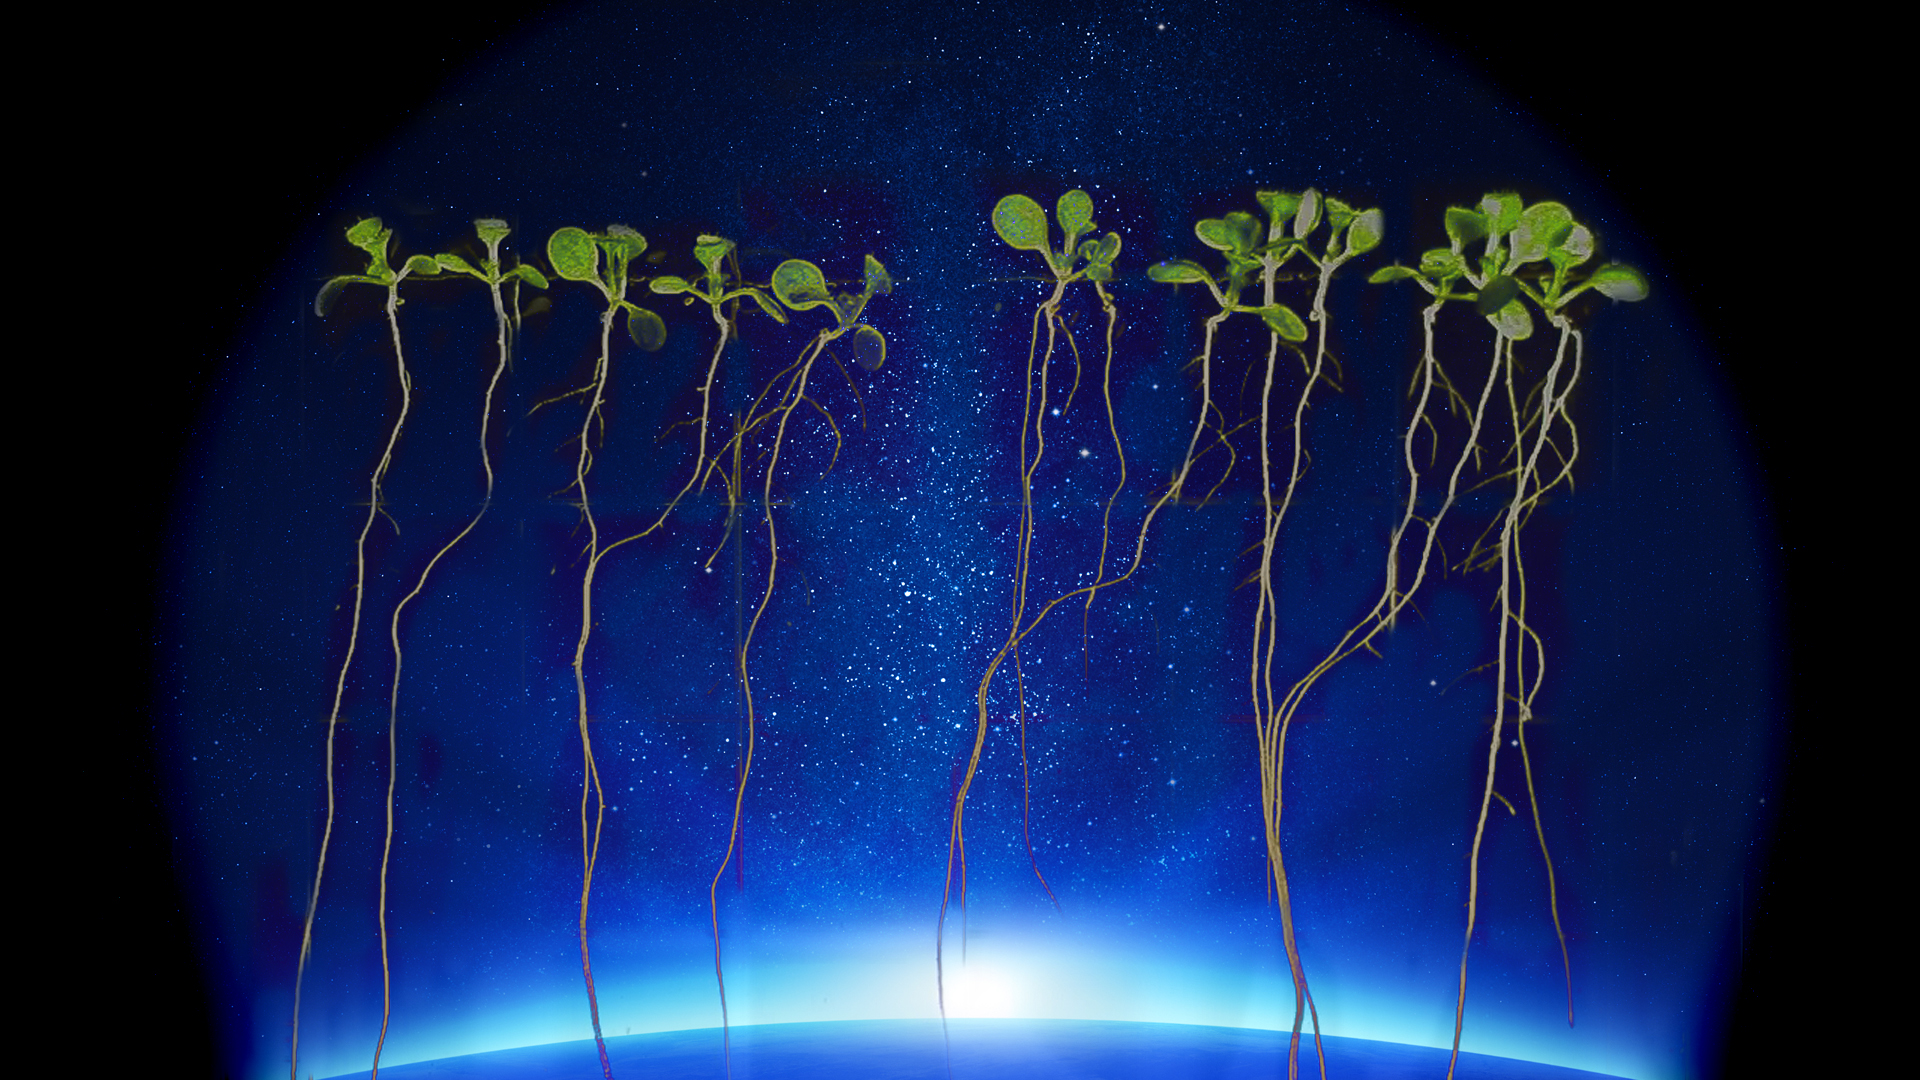 Plants in Space! - Science Friday | 1920 x 1080 jpeg 1713kB